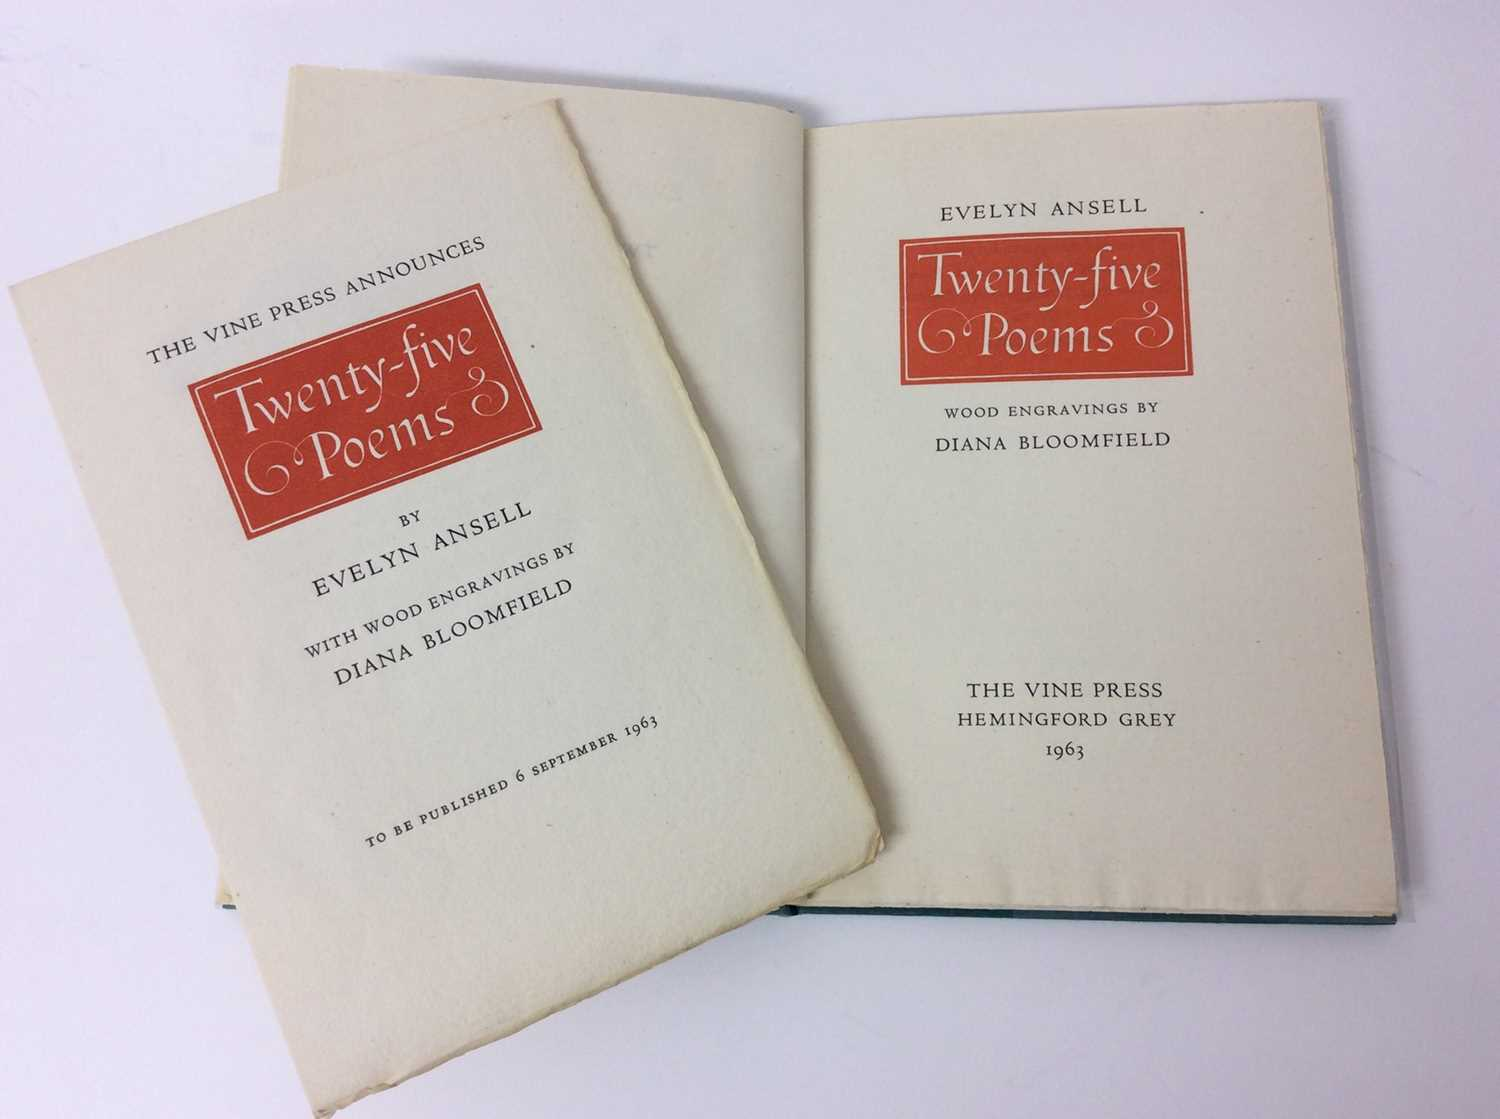 Evelyn Ansell - Twenty Five Poems, also Poems from the Works of Charles Cotton, illustrated by Claud - Image 3 of 13